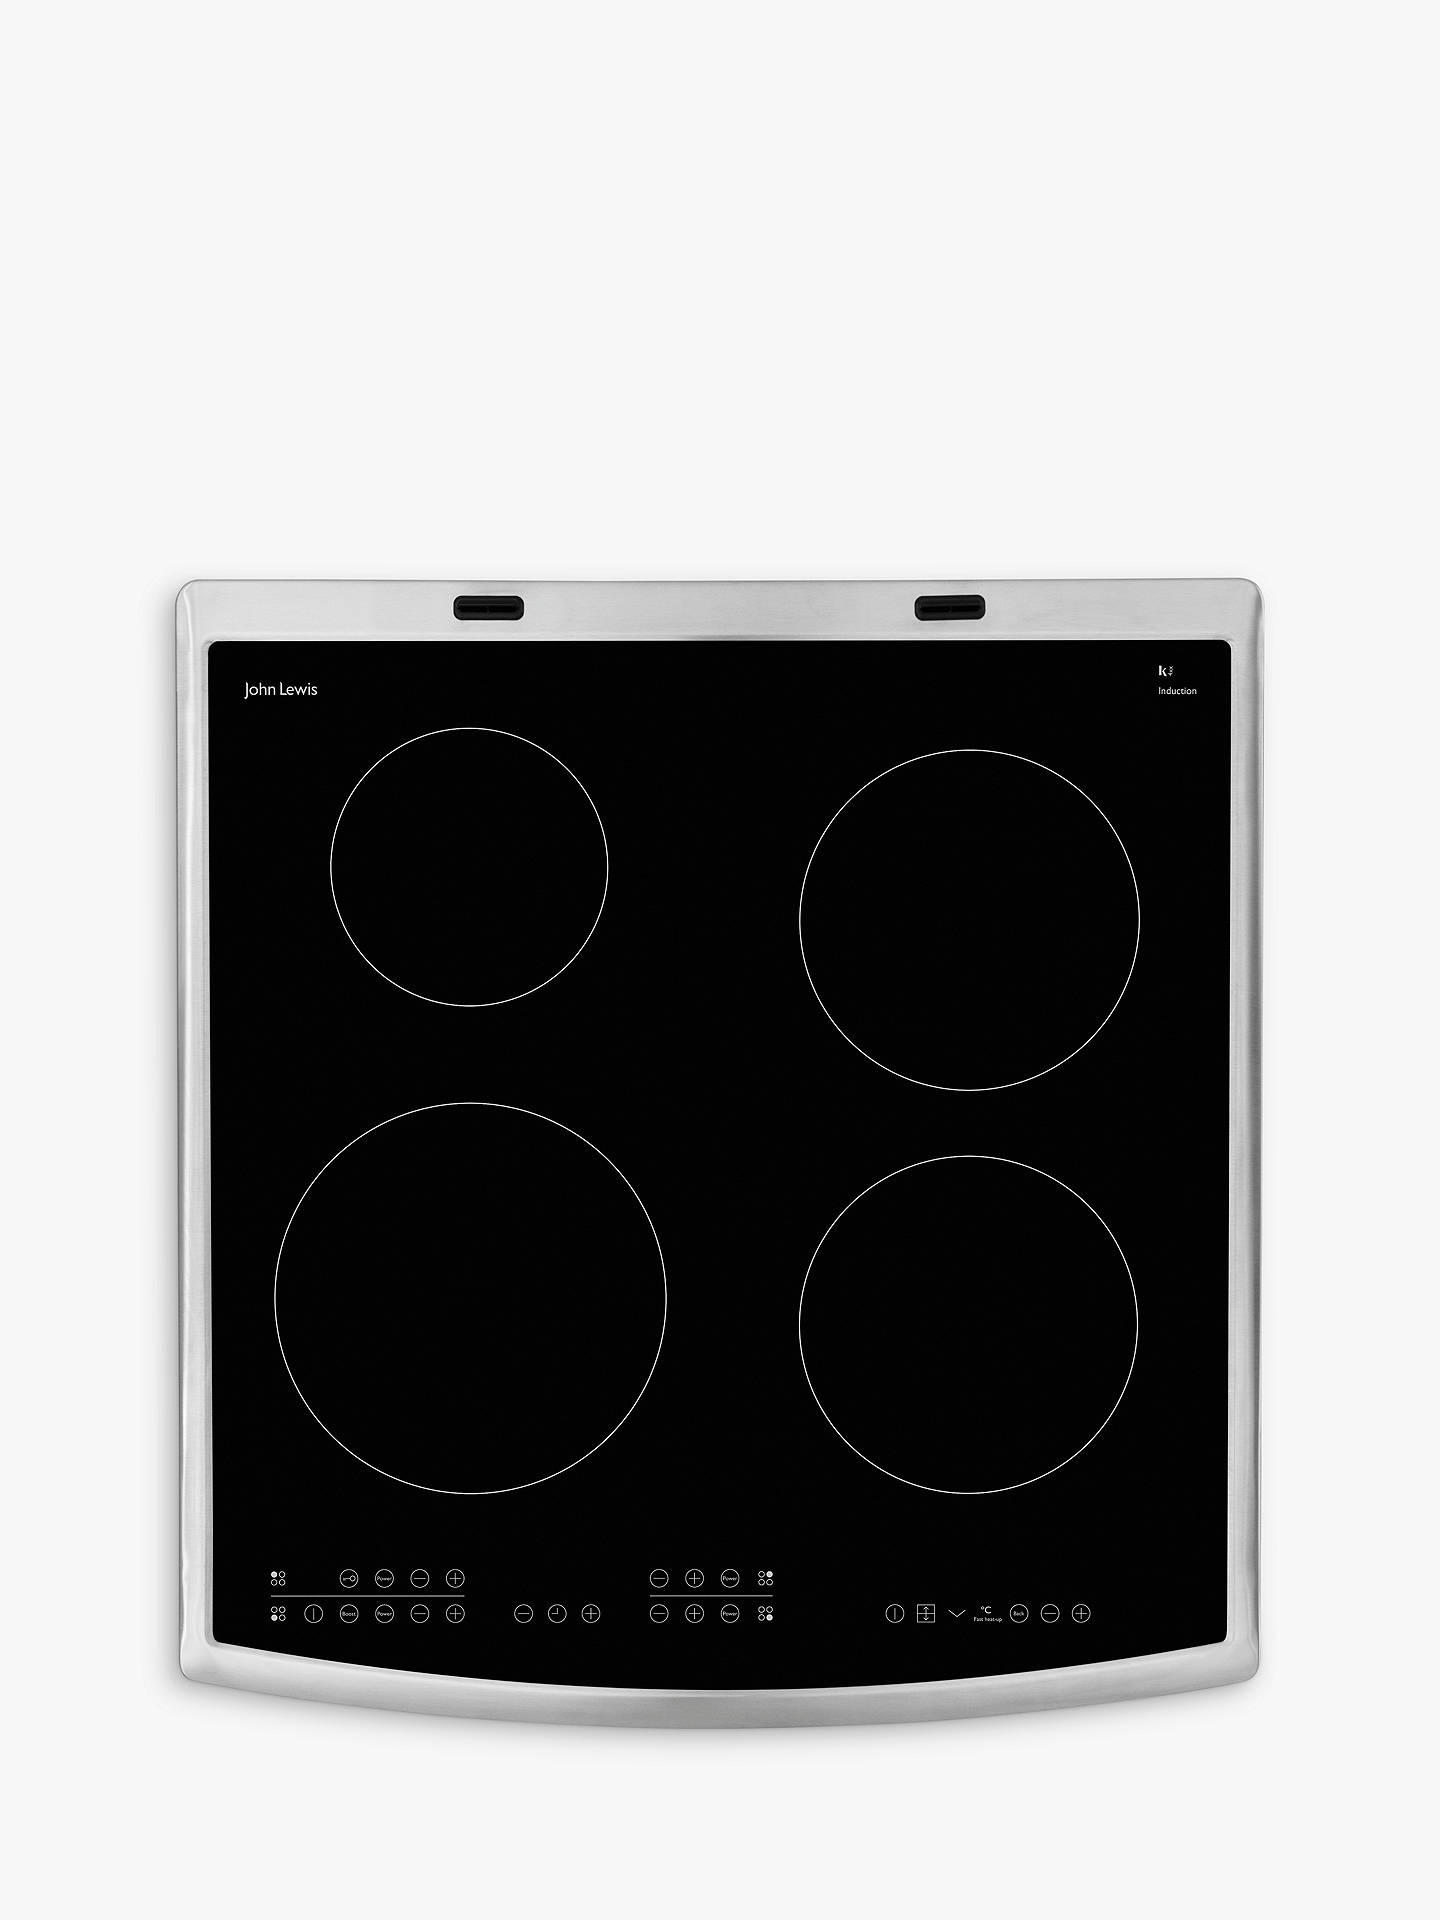 BuyJohn Lewis & Partners JLFSEC612 Induction Hob Electric Cooker, Stainless Steel Online at johnlewis.com